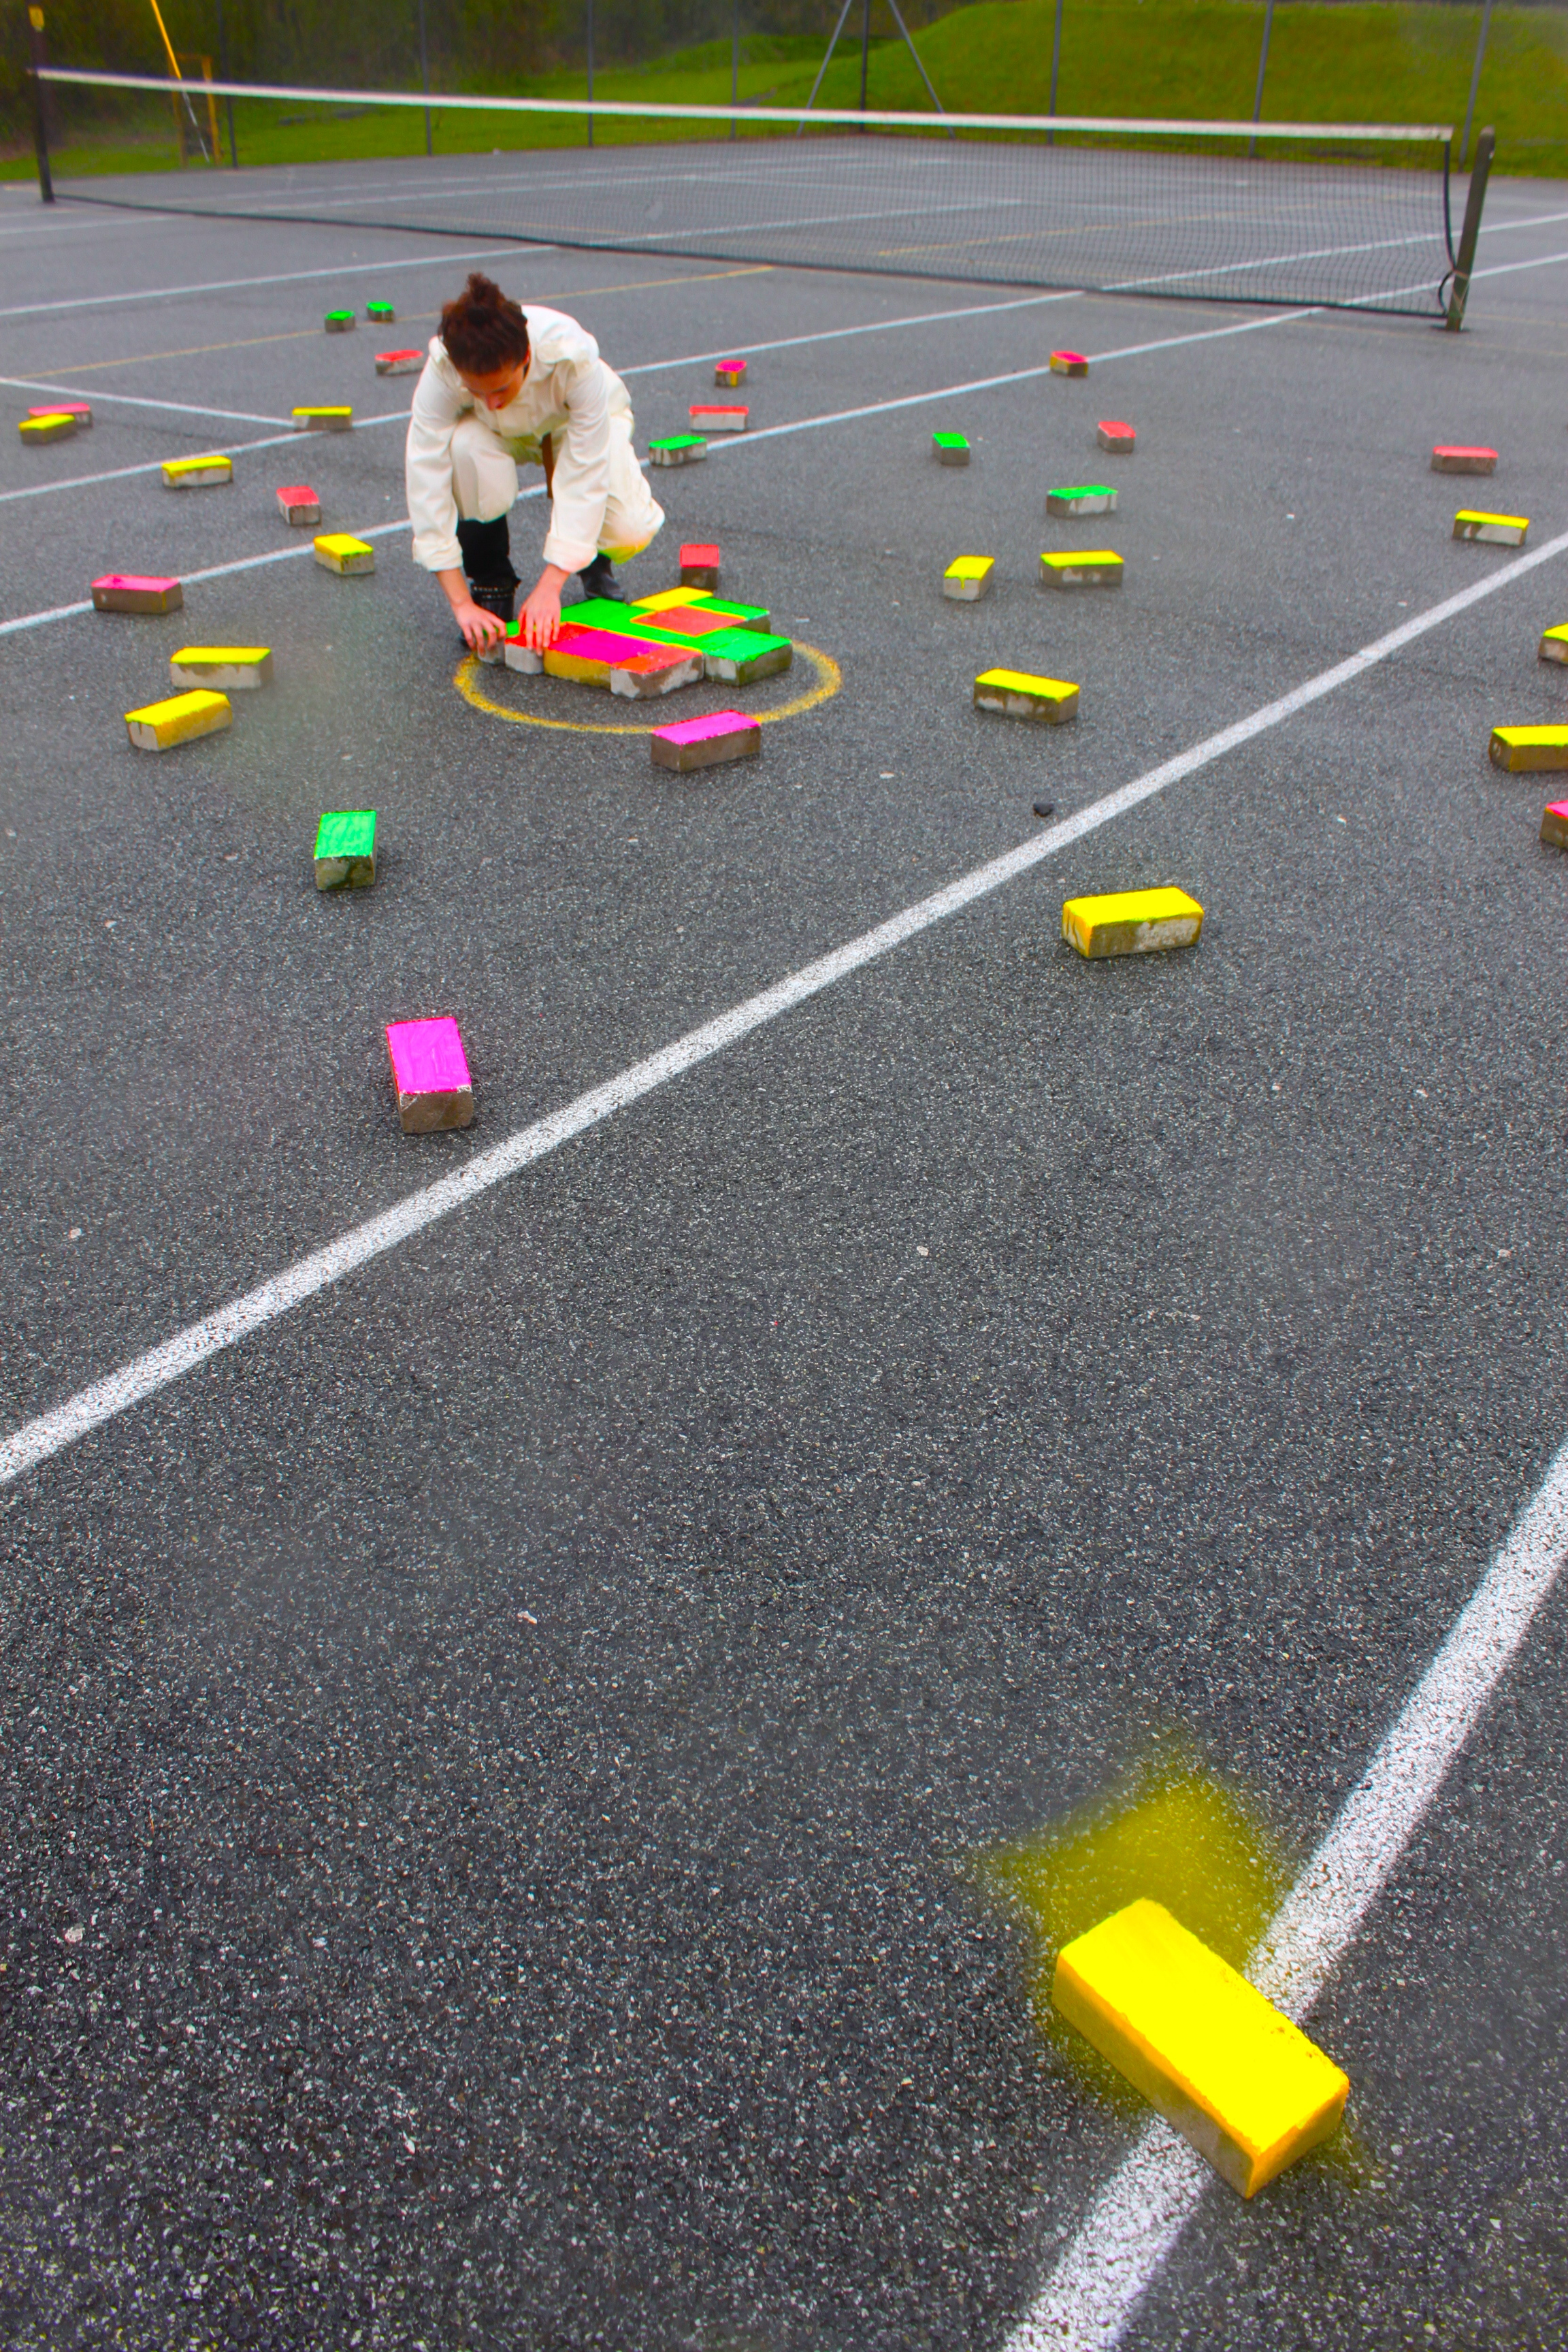 Ticker-Tape: Playground - PerformanceTicker-Tape: Playground occurred at Ysgol Gyfun Emlyn/Newcastle Emlyn Secondary School in Wales at 11:20am on Thursday 9.5.13. The artist stacked 100 bricks in the centre of the caged tennis court before silently placing the fluorescent bricks on the floor so that they appeared like confetti scattered across the playground.Students watched from windows and doorways. The playground is a socially significant space;Govier commented: